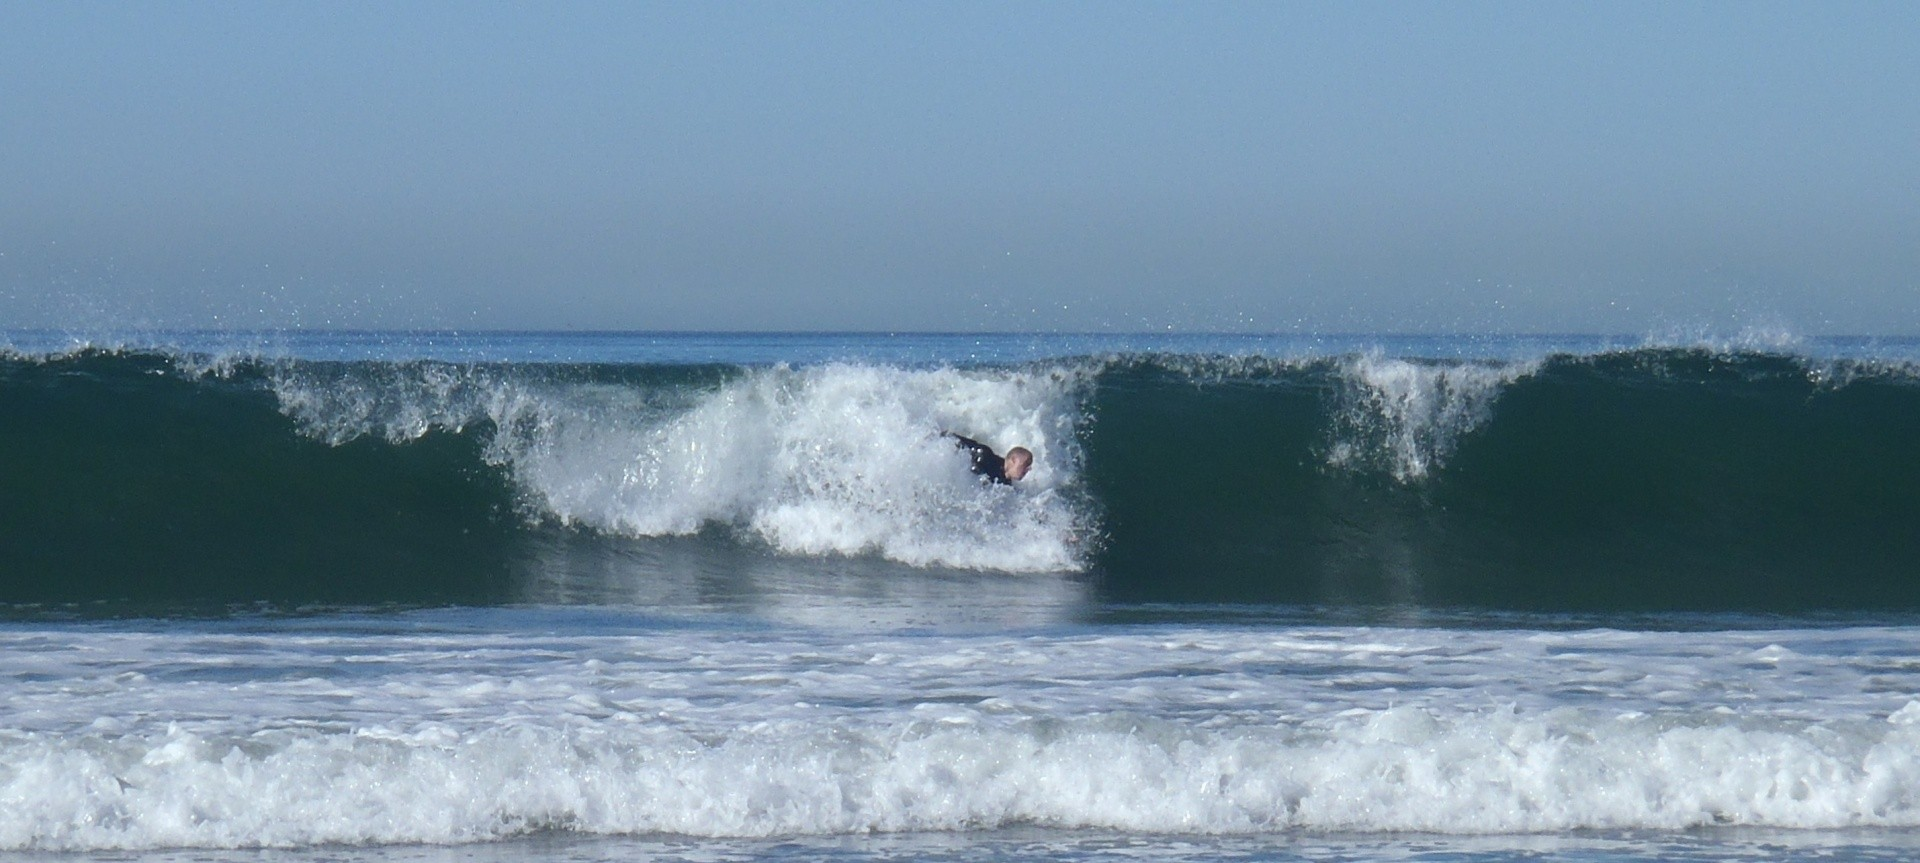 Lewis Day's photo of Pacific Beach